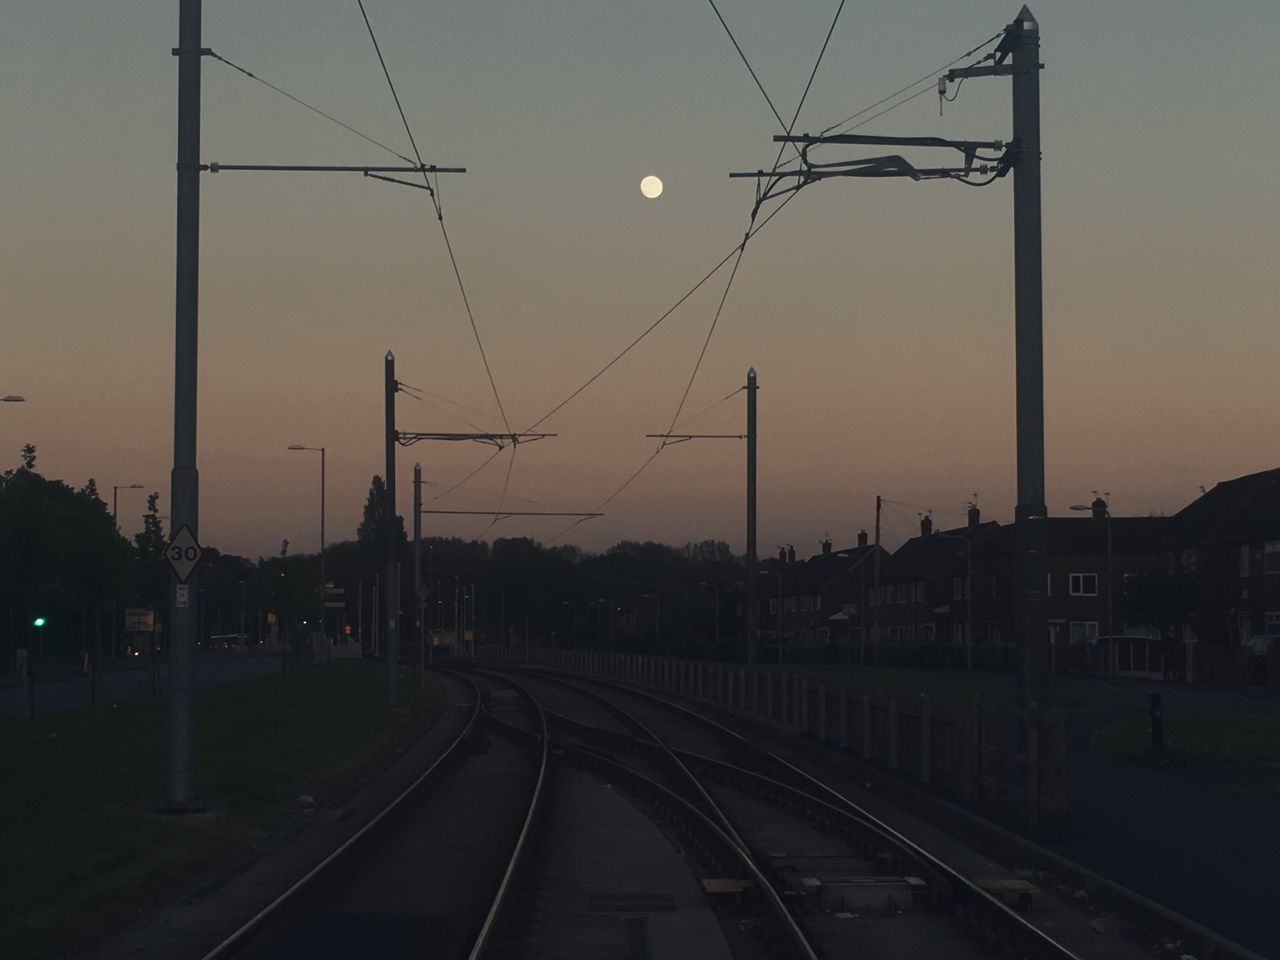 Glow that mind Railroad Track Transportation Cable Connection Rail Transportation Sky Power Line  Electricity Pylon Sunset Electricity  No People Public Transportation The Way Forward Outdoors Built Structure Technology Nature Clear Sky Architecture Day